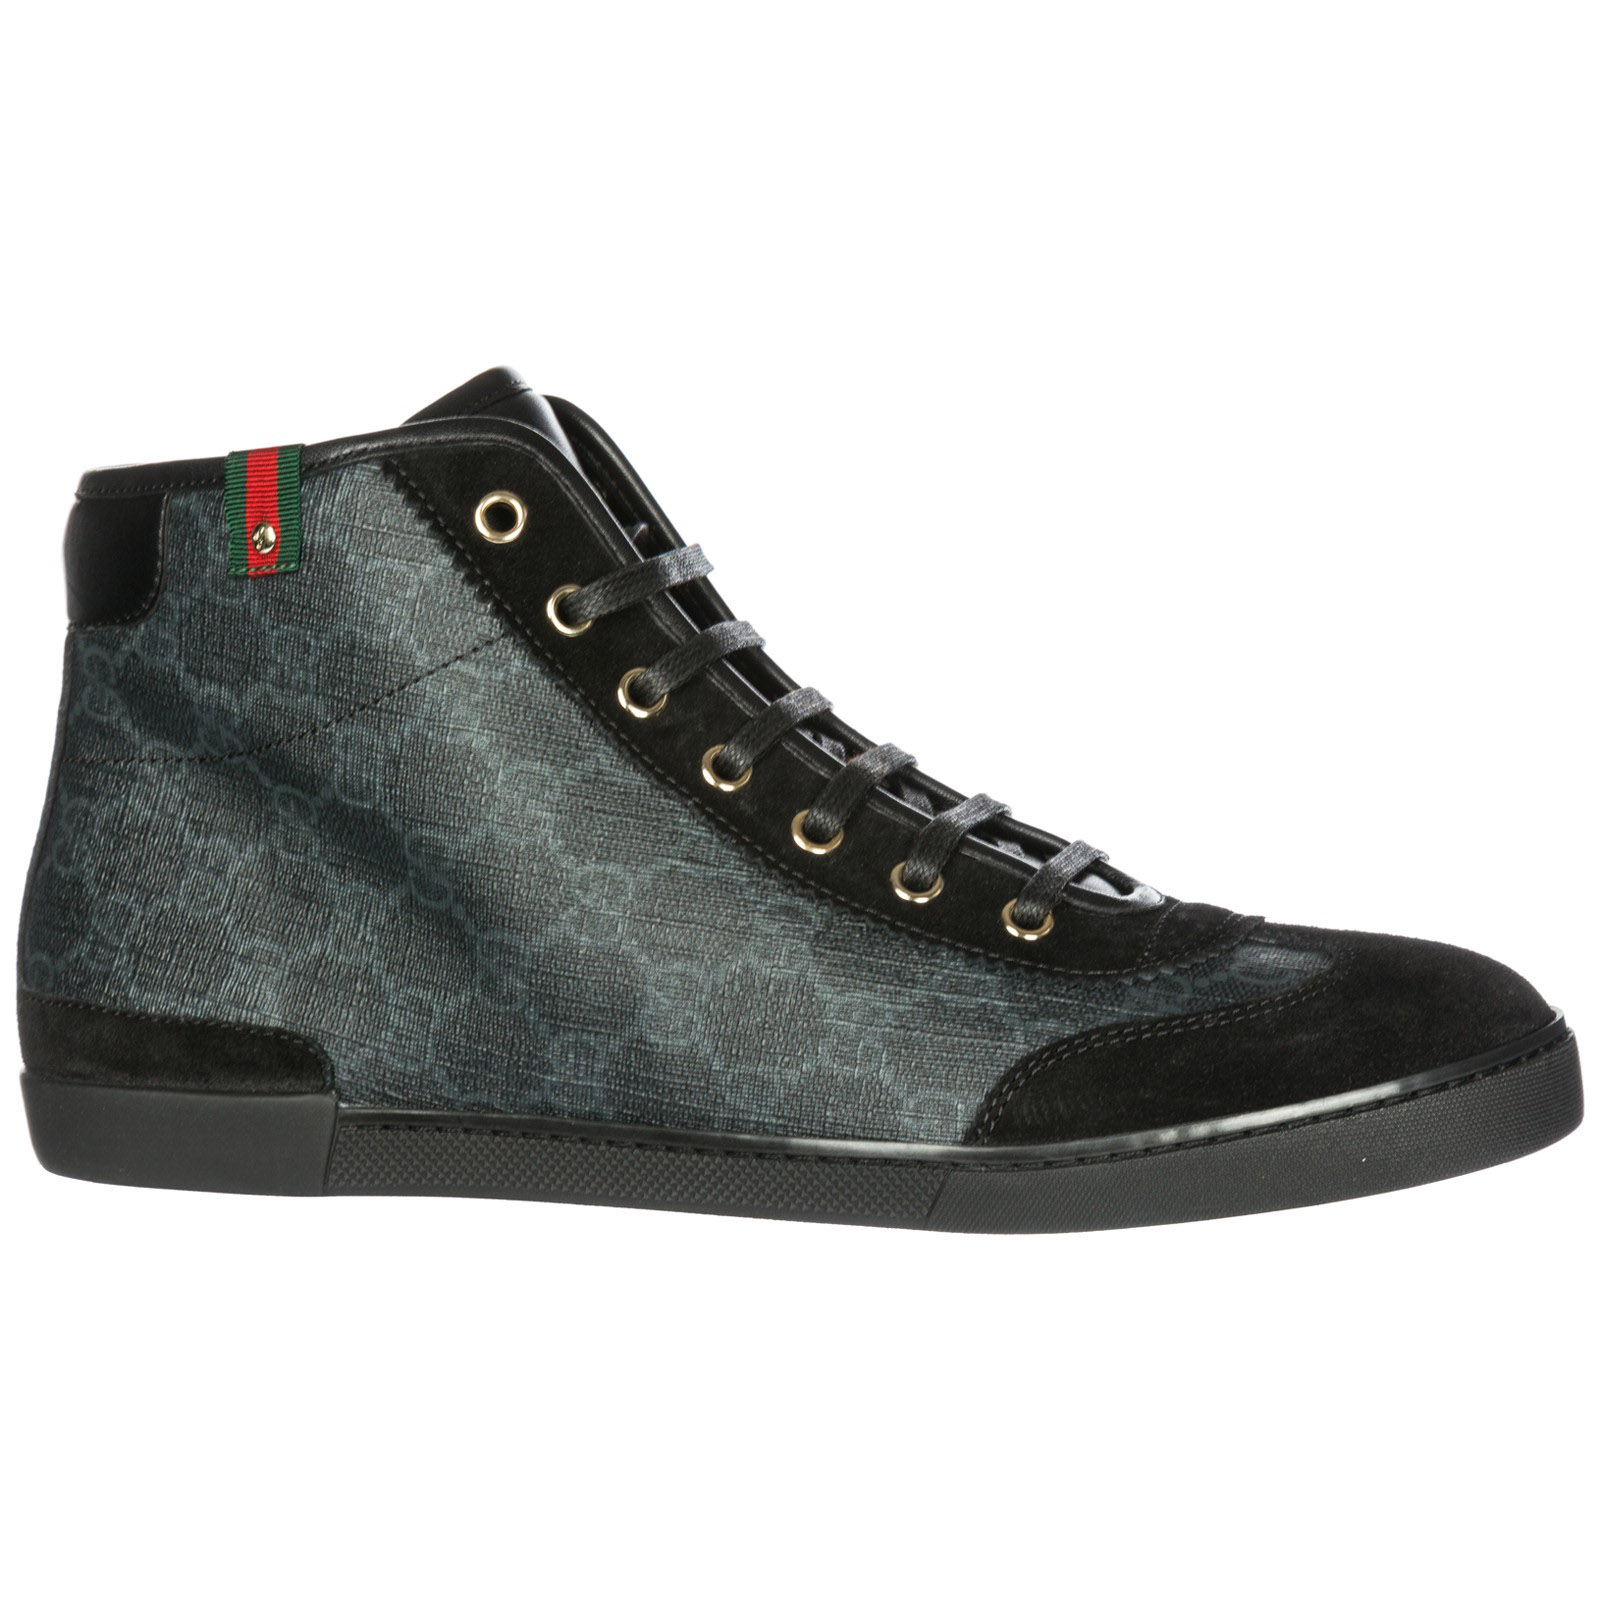 a6ad8272903 Gucci Women s shoes high top leather trainers sneakers